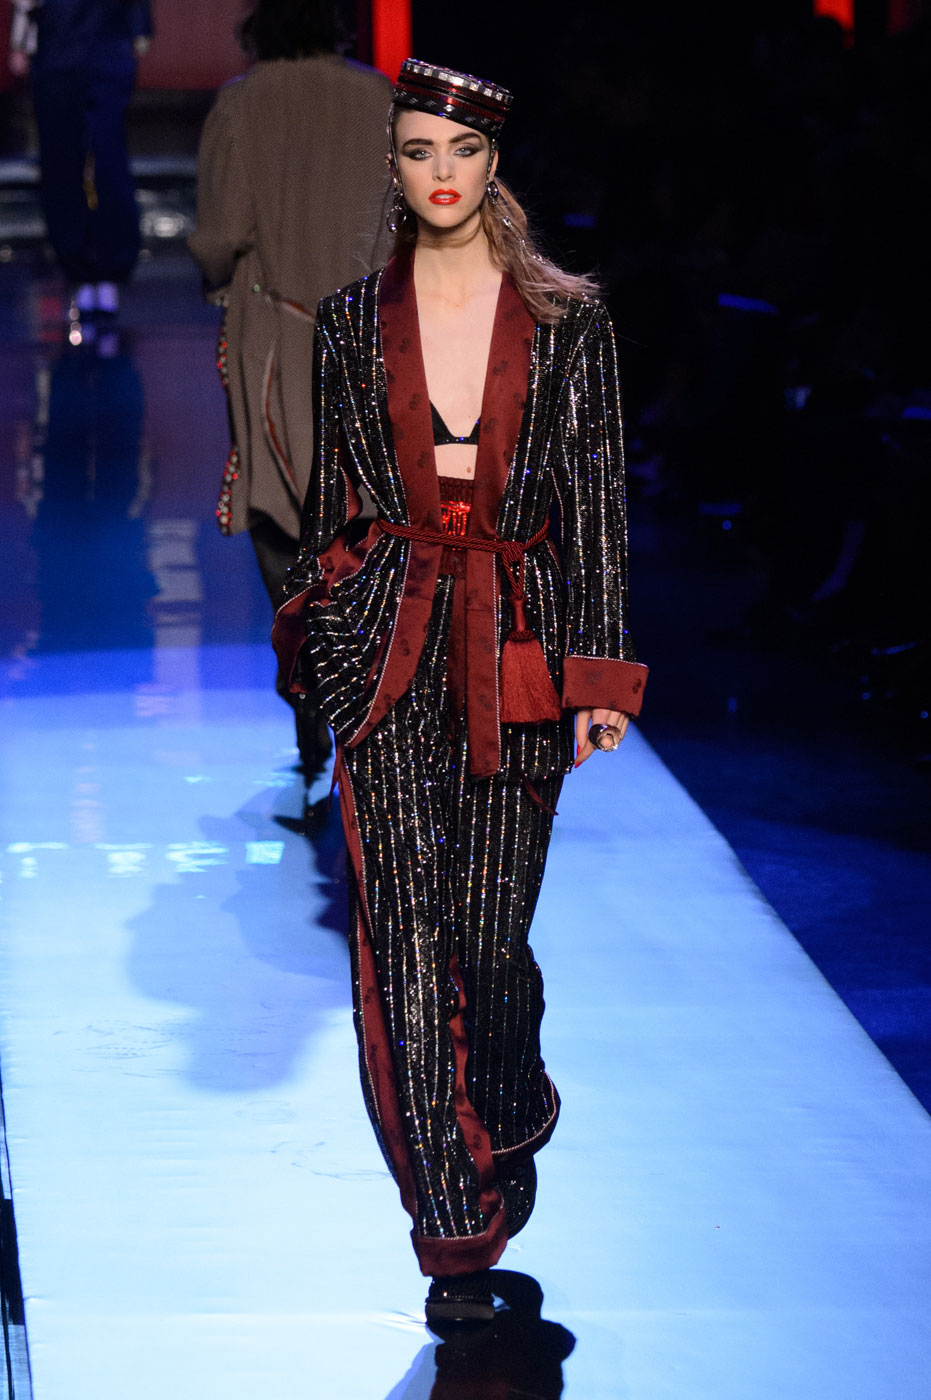 Jean Paul Gaultier Resurrects the 1980s for Spring 2016 Couture